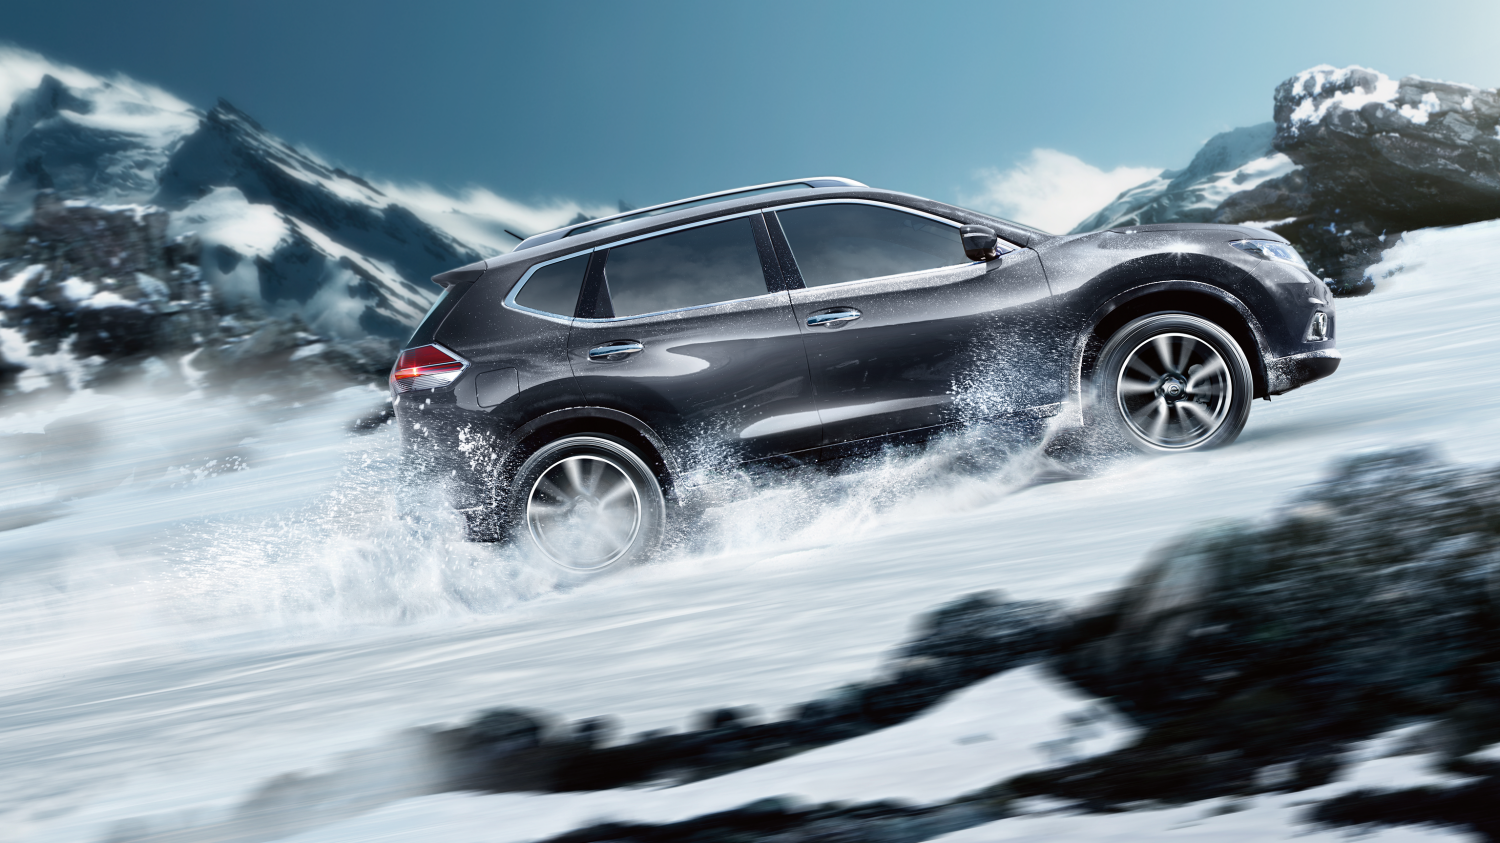 7 seater & 4x4 car design - 4x4 exterior - Snow | Nissan X-Trail